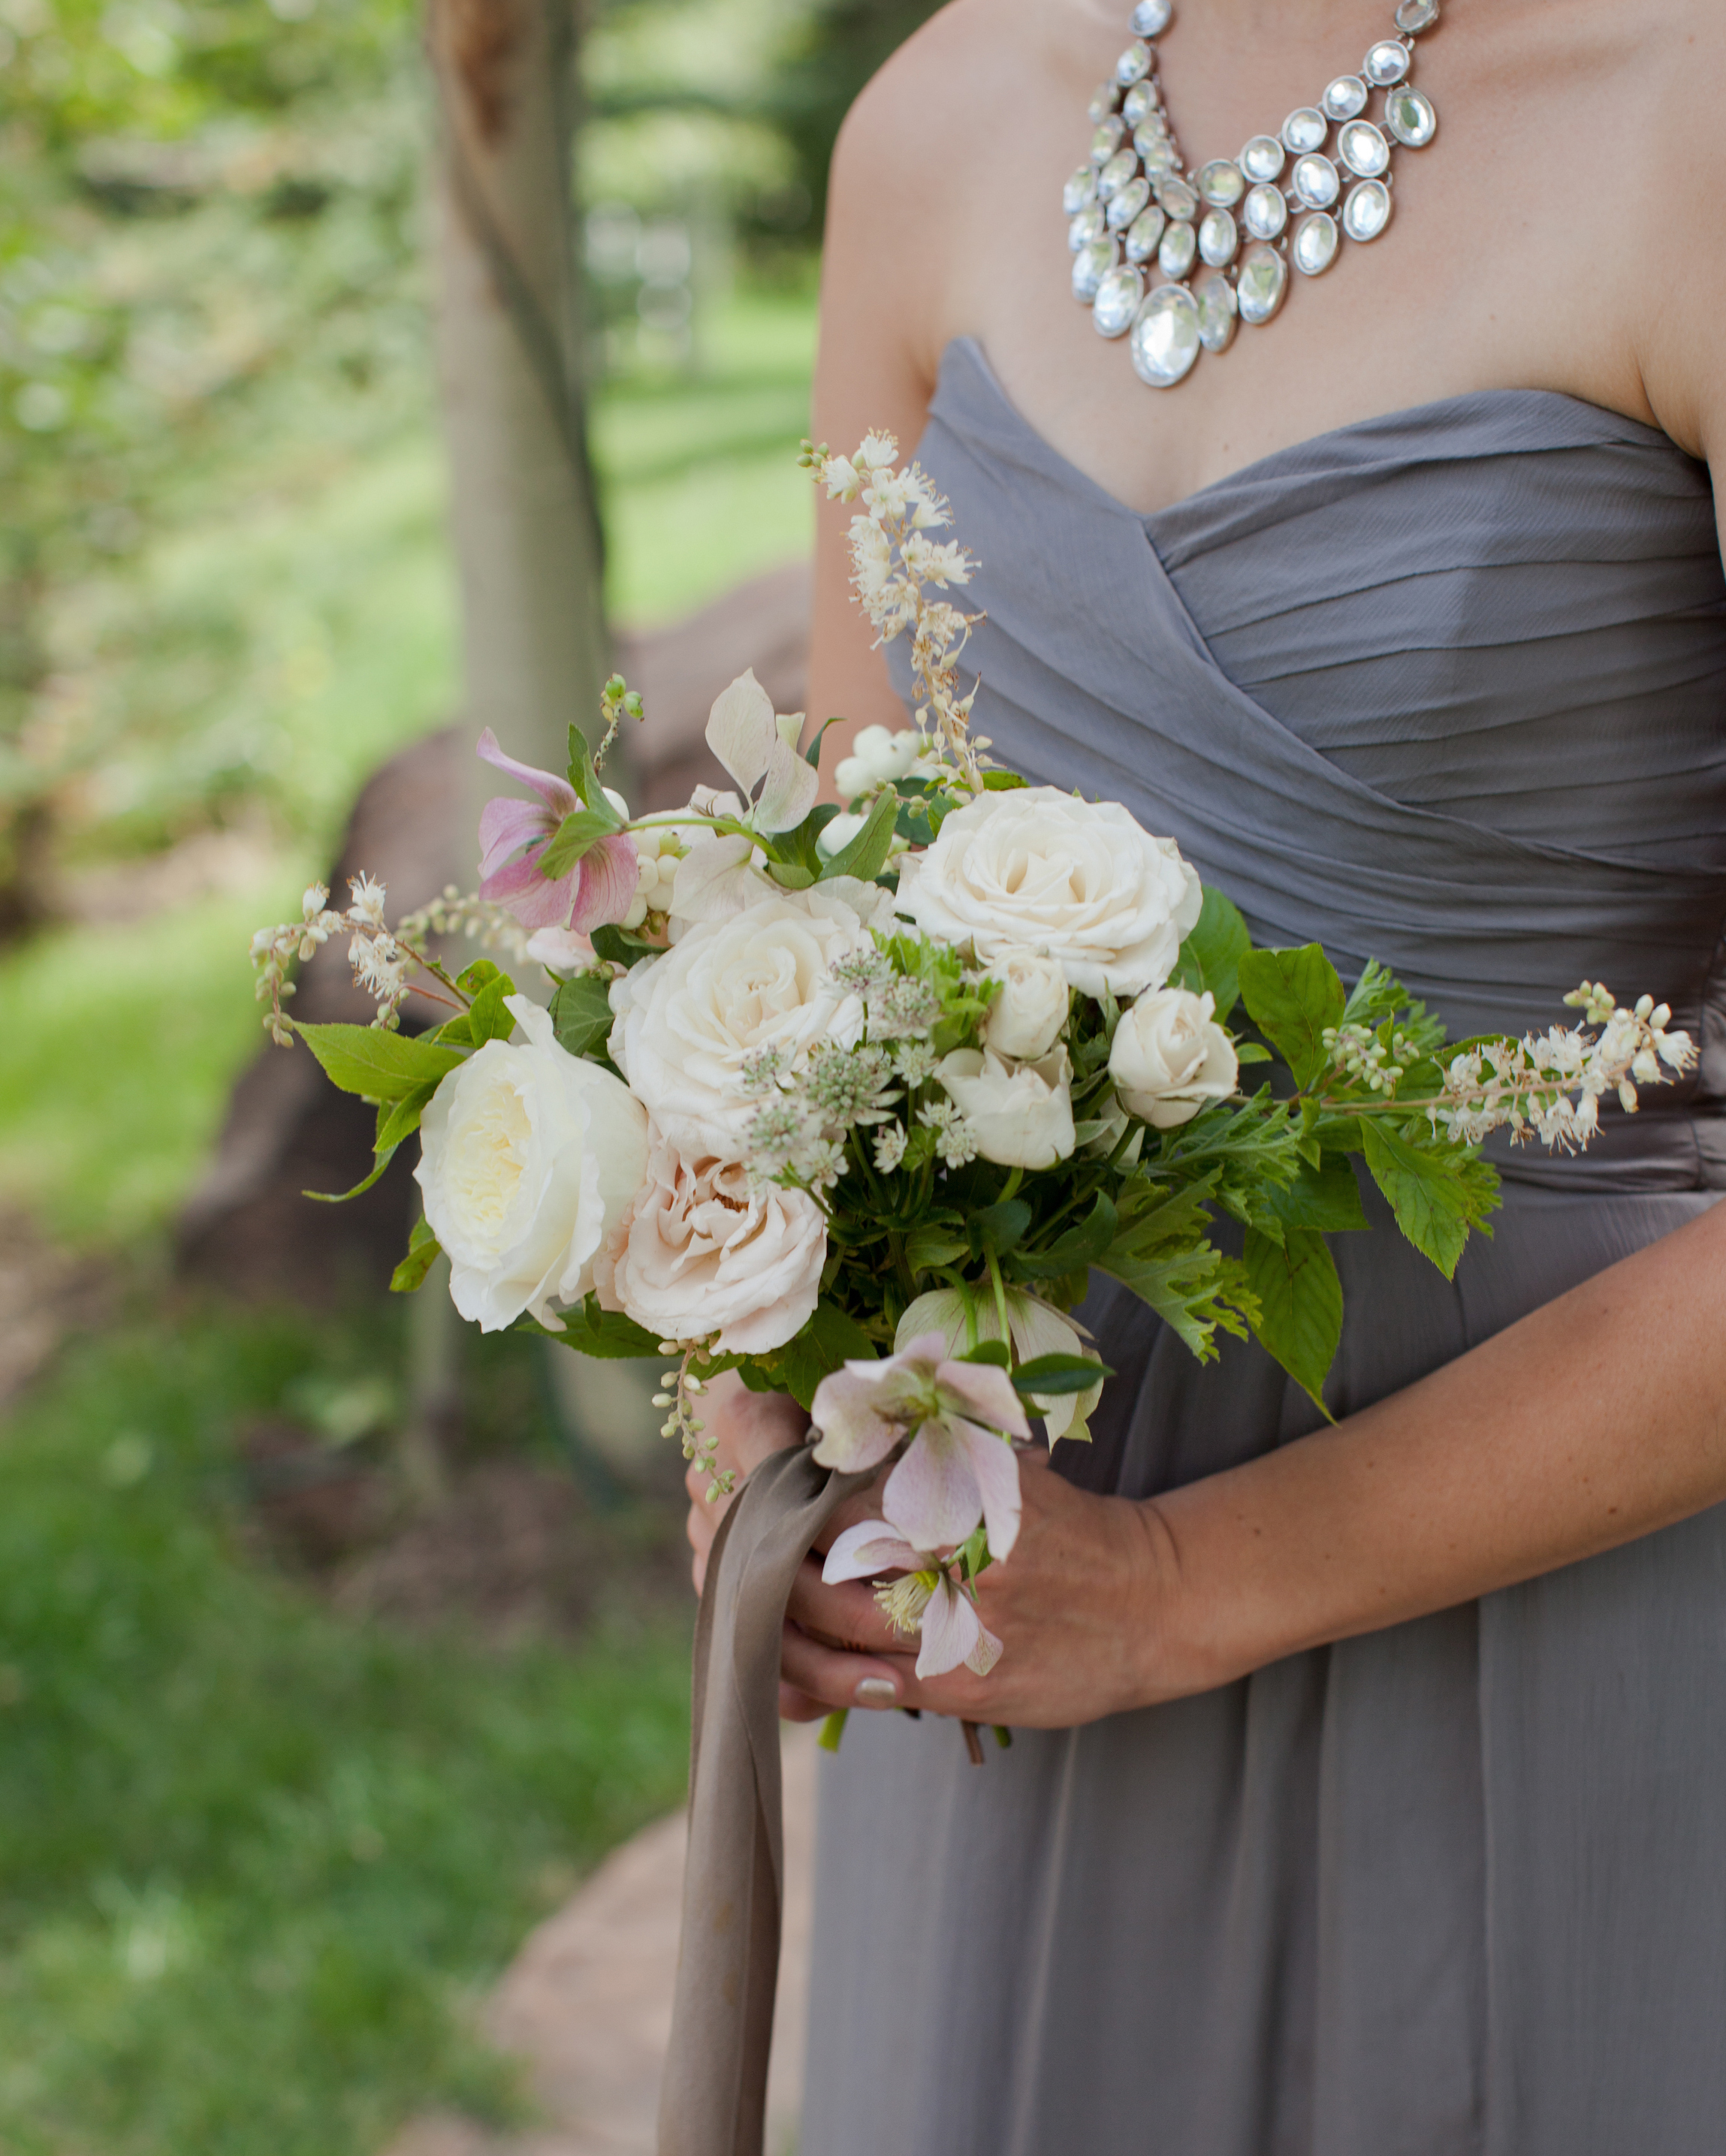 The Maid of Honor's Bouquet